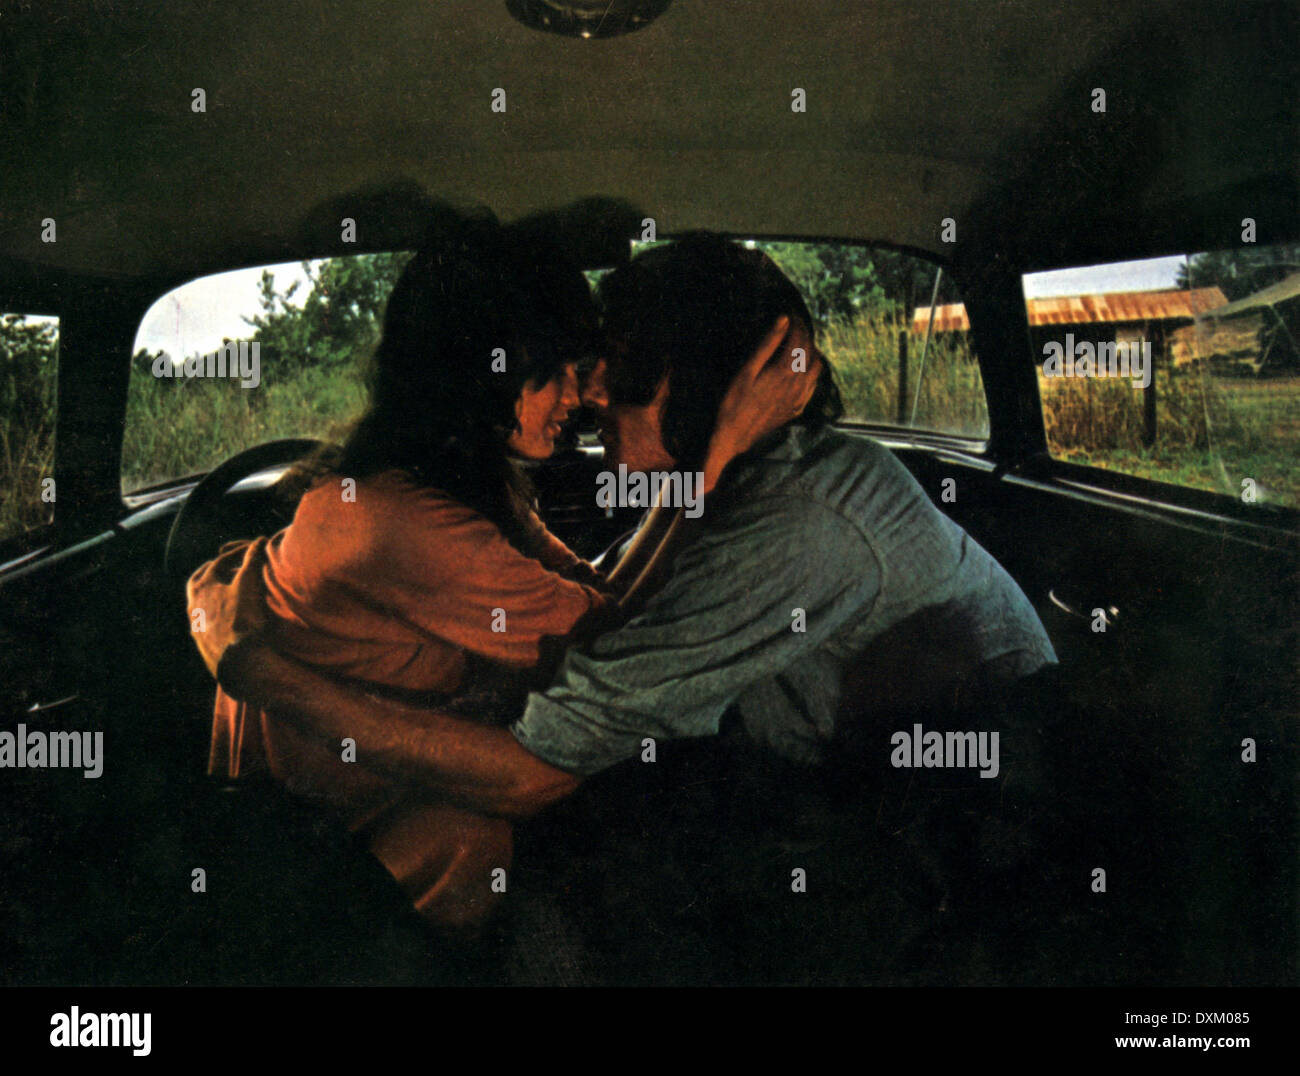 TWO-LANE BLACKTOP - Stock Image